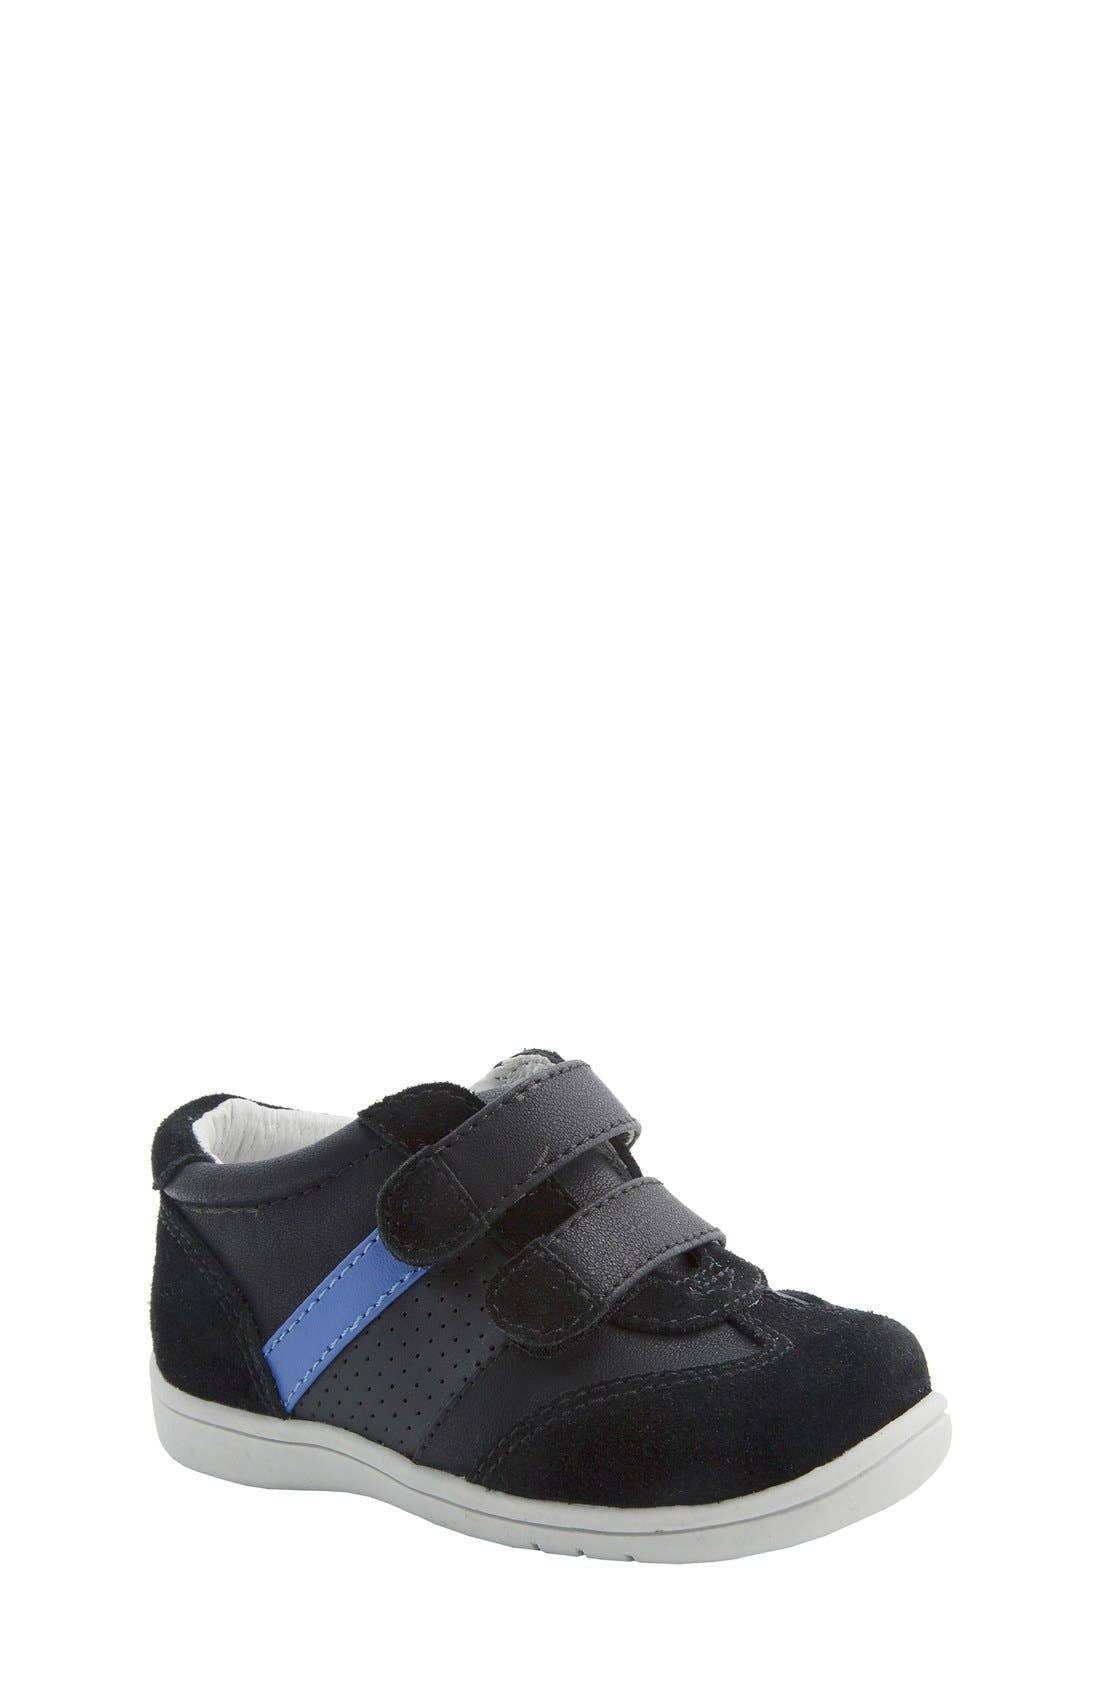 Nina 'Everest' Sneaker,                         Main,                         color, 008